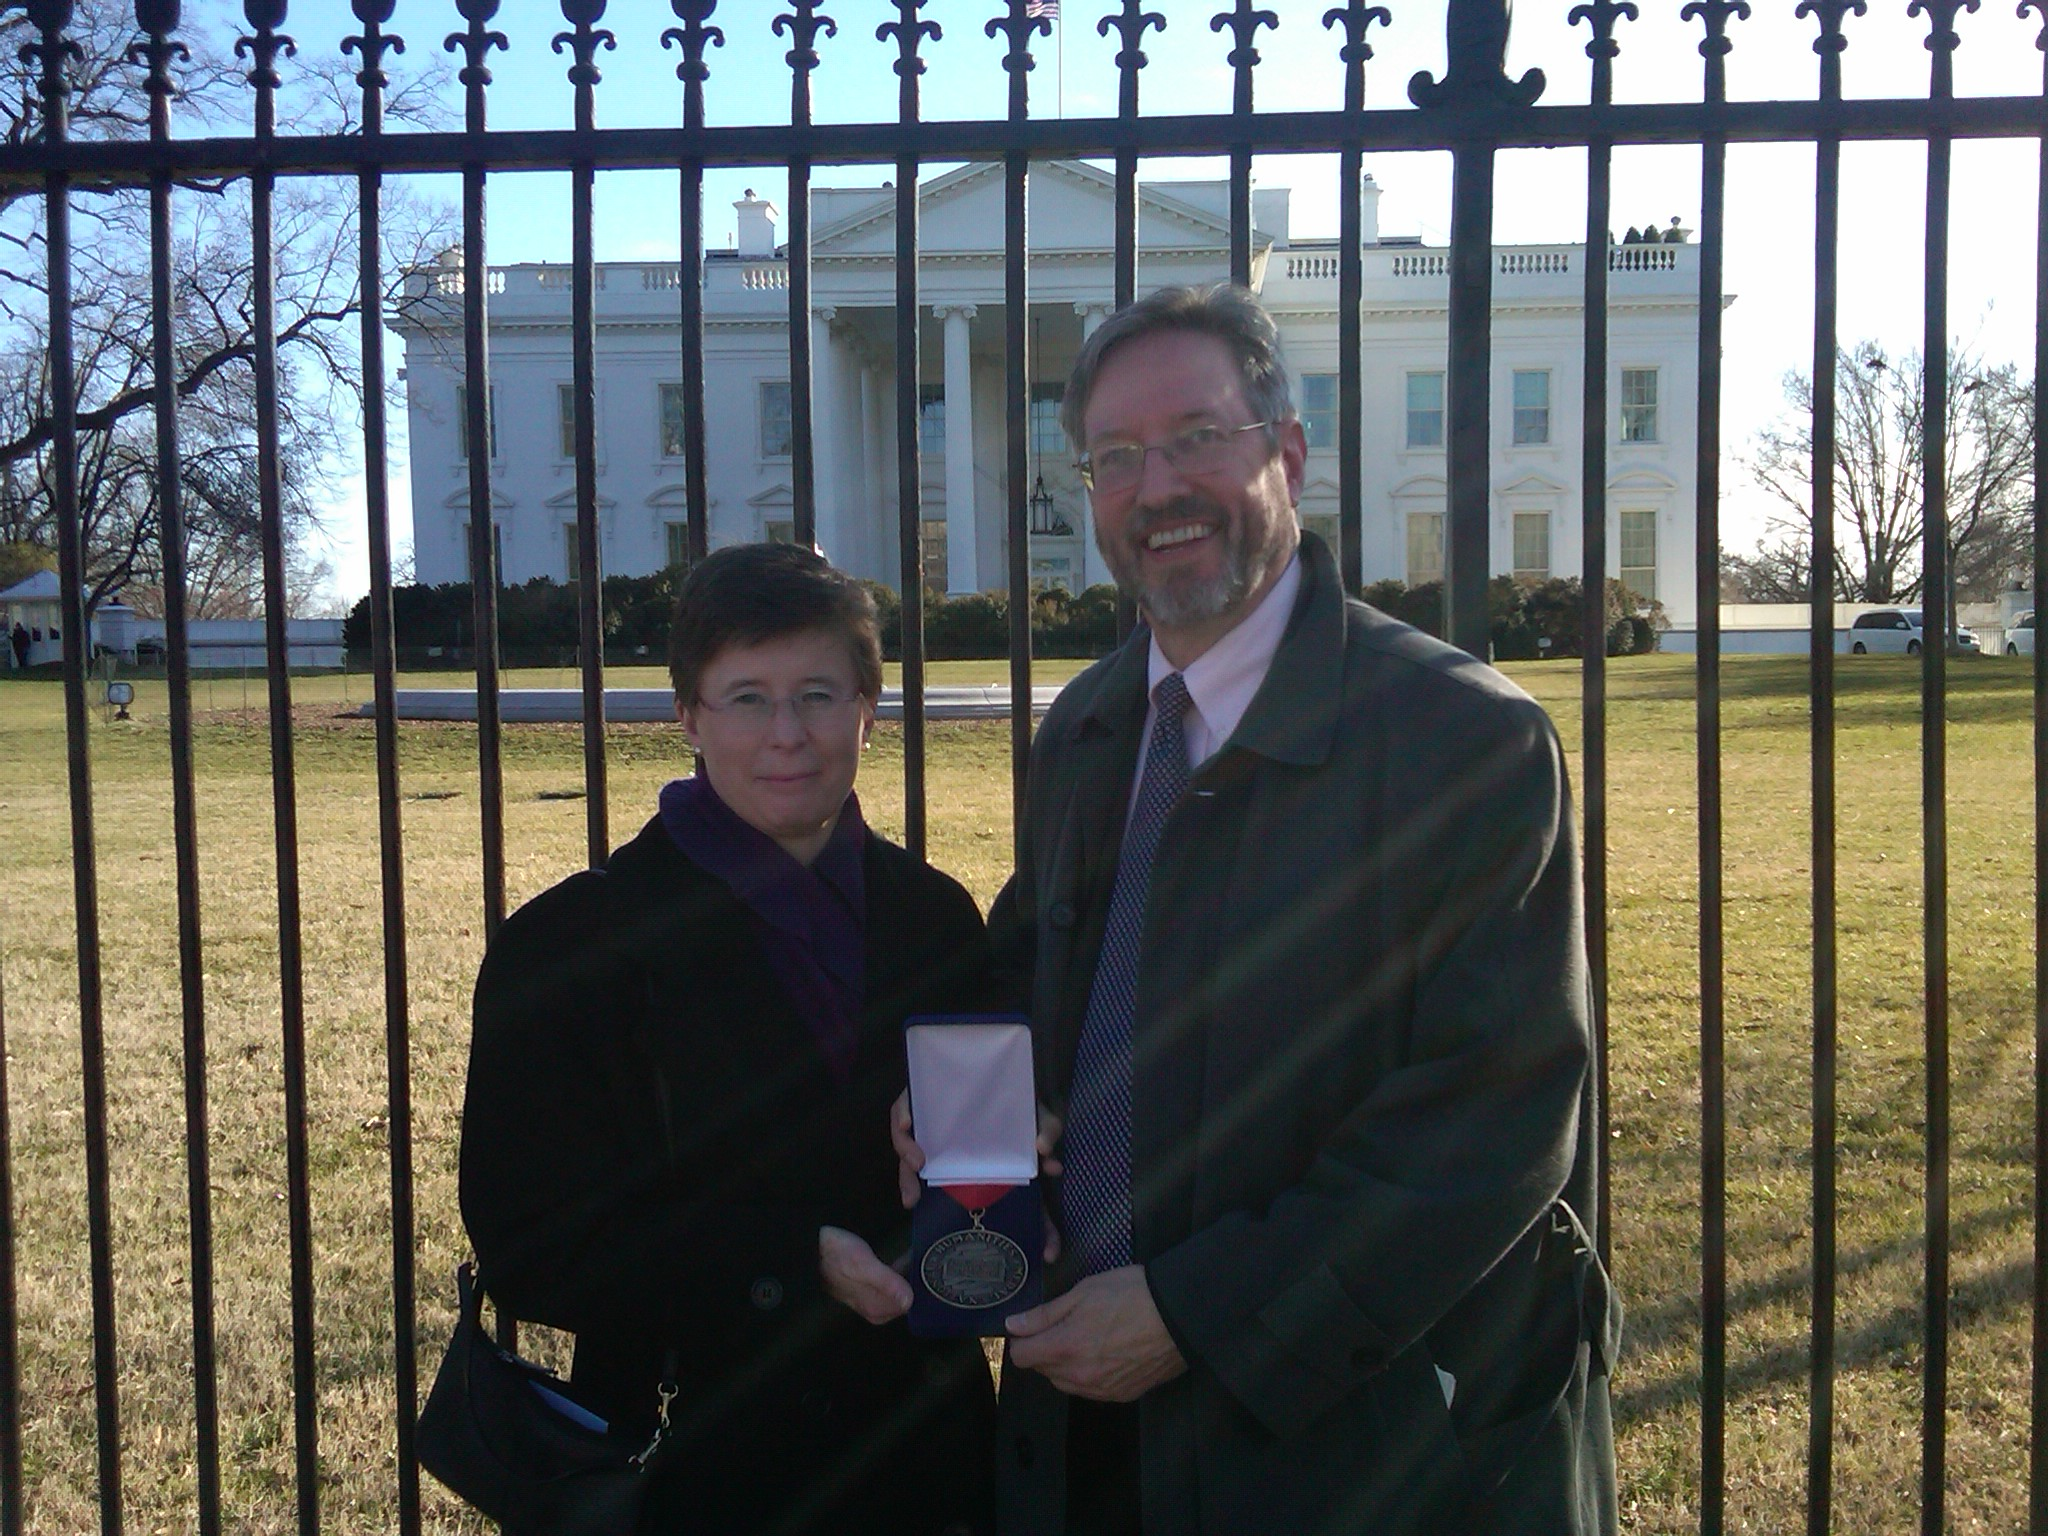 Dr. Cathy Gorn, executive director of NHD, and Ted Prasse, trustee and former chairman of the board of NHD and president of the Board of Trustees of the Ohio Historical Society, outside the White House with the National Humanities Medal, 2.13.12. 